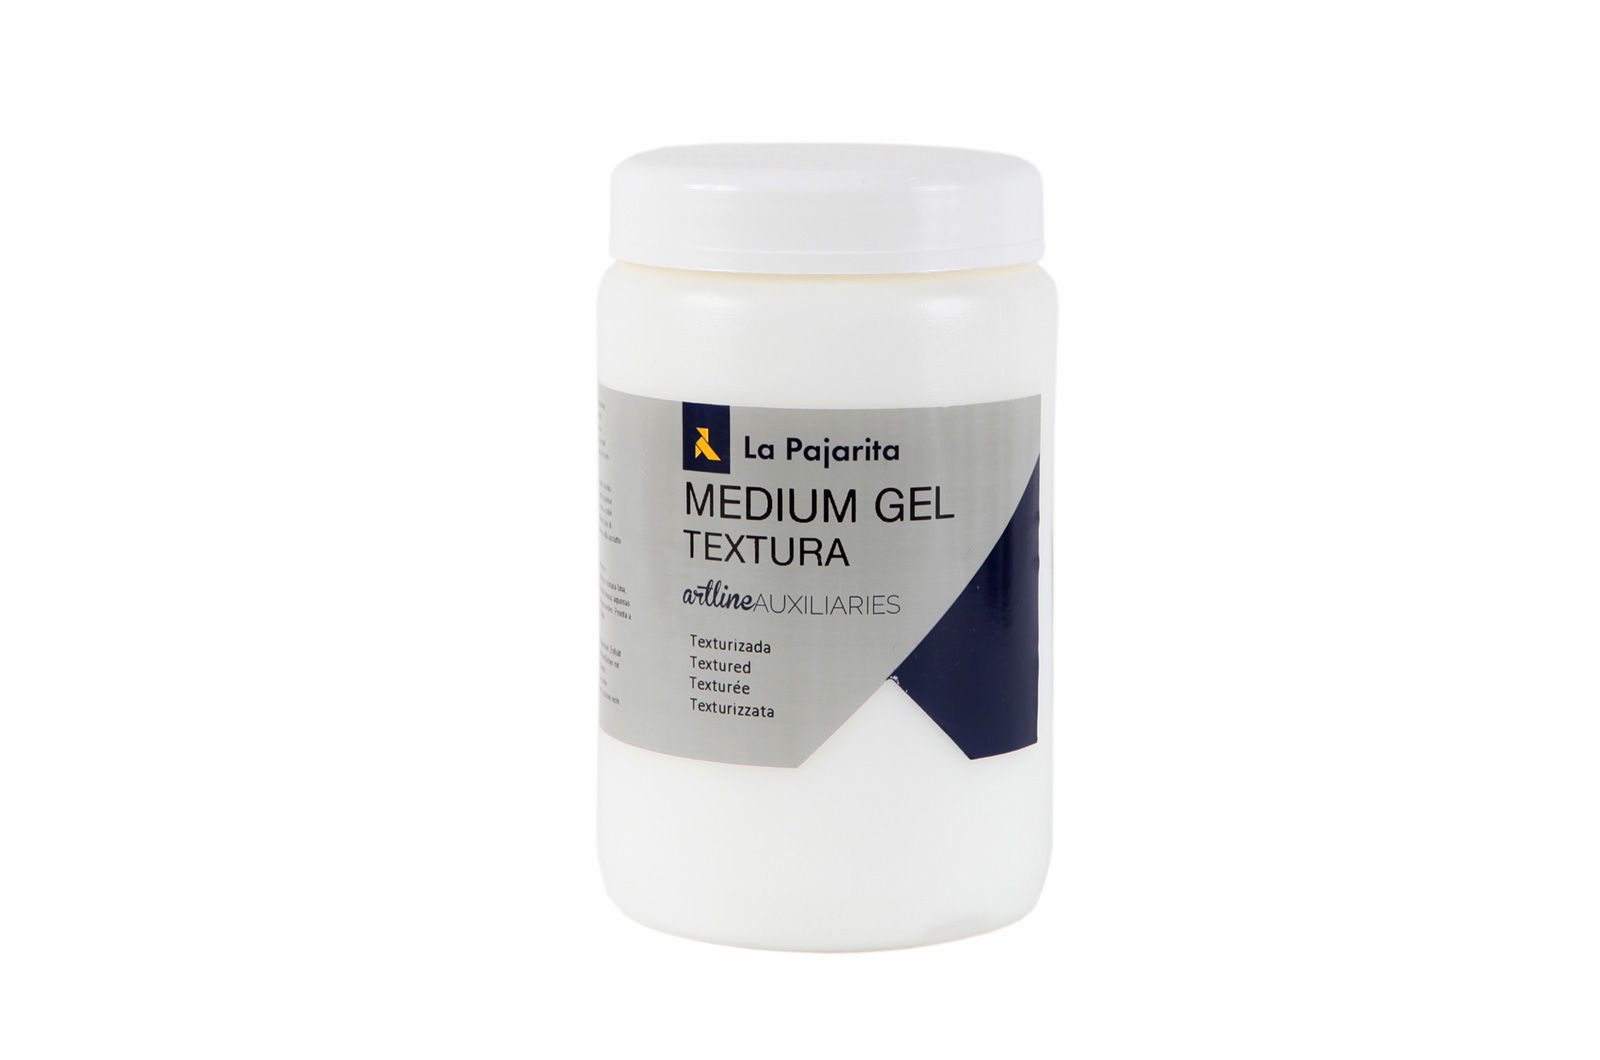 MEDIUM GEL TEXT/PASTA RELEVO TEXTURADA 500ML 130096 PAJARITA